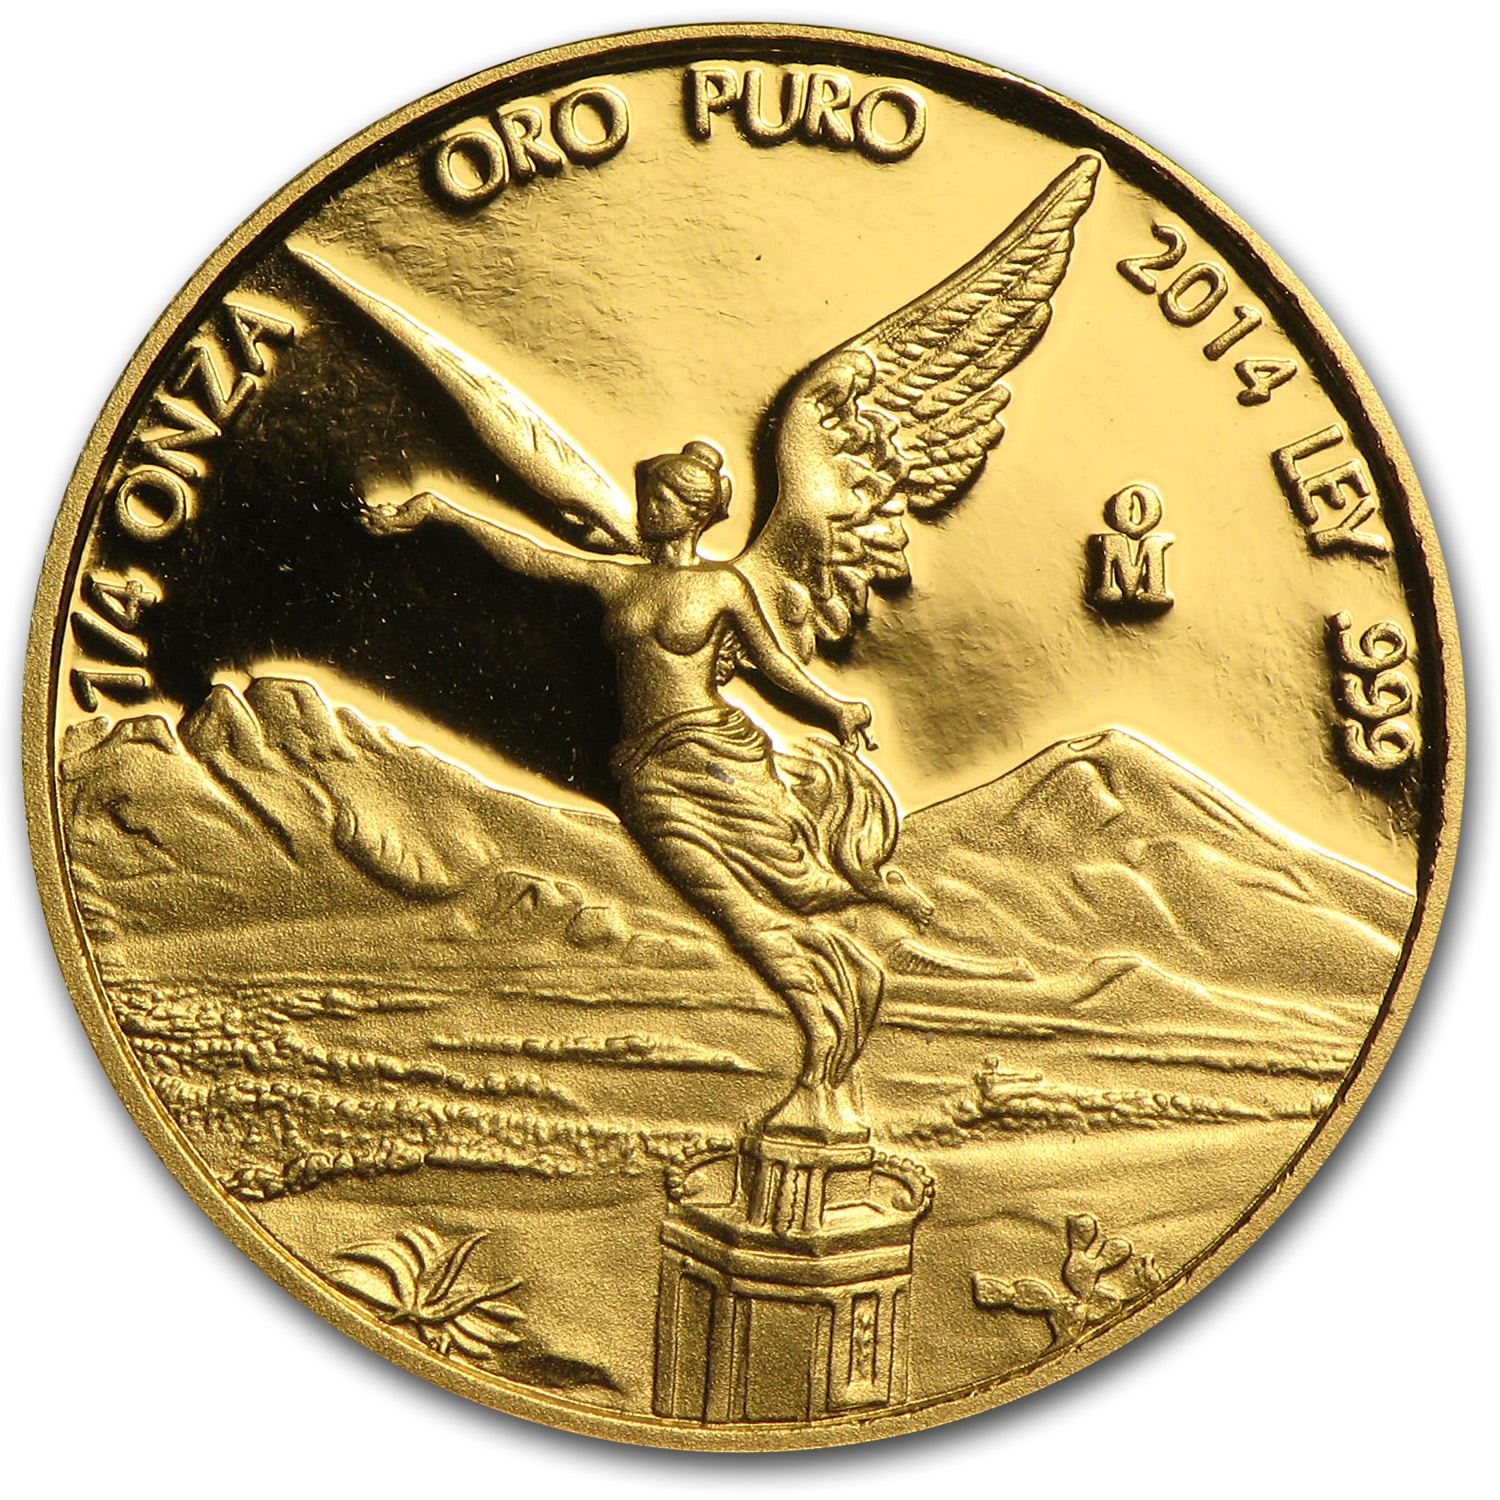 2014 1/4 oz Gold Mexican Libertad - Proof